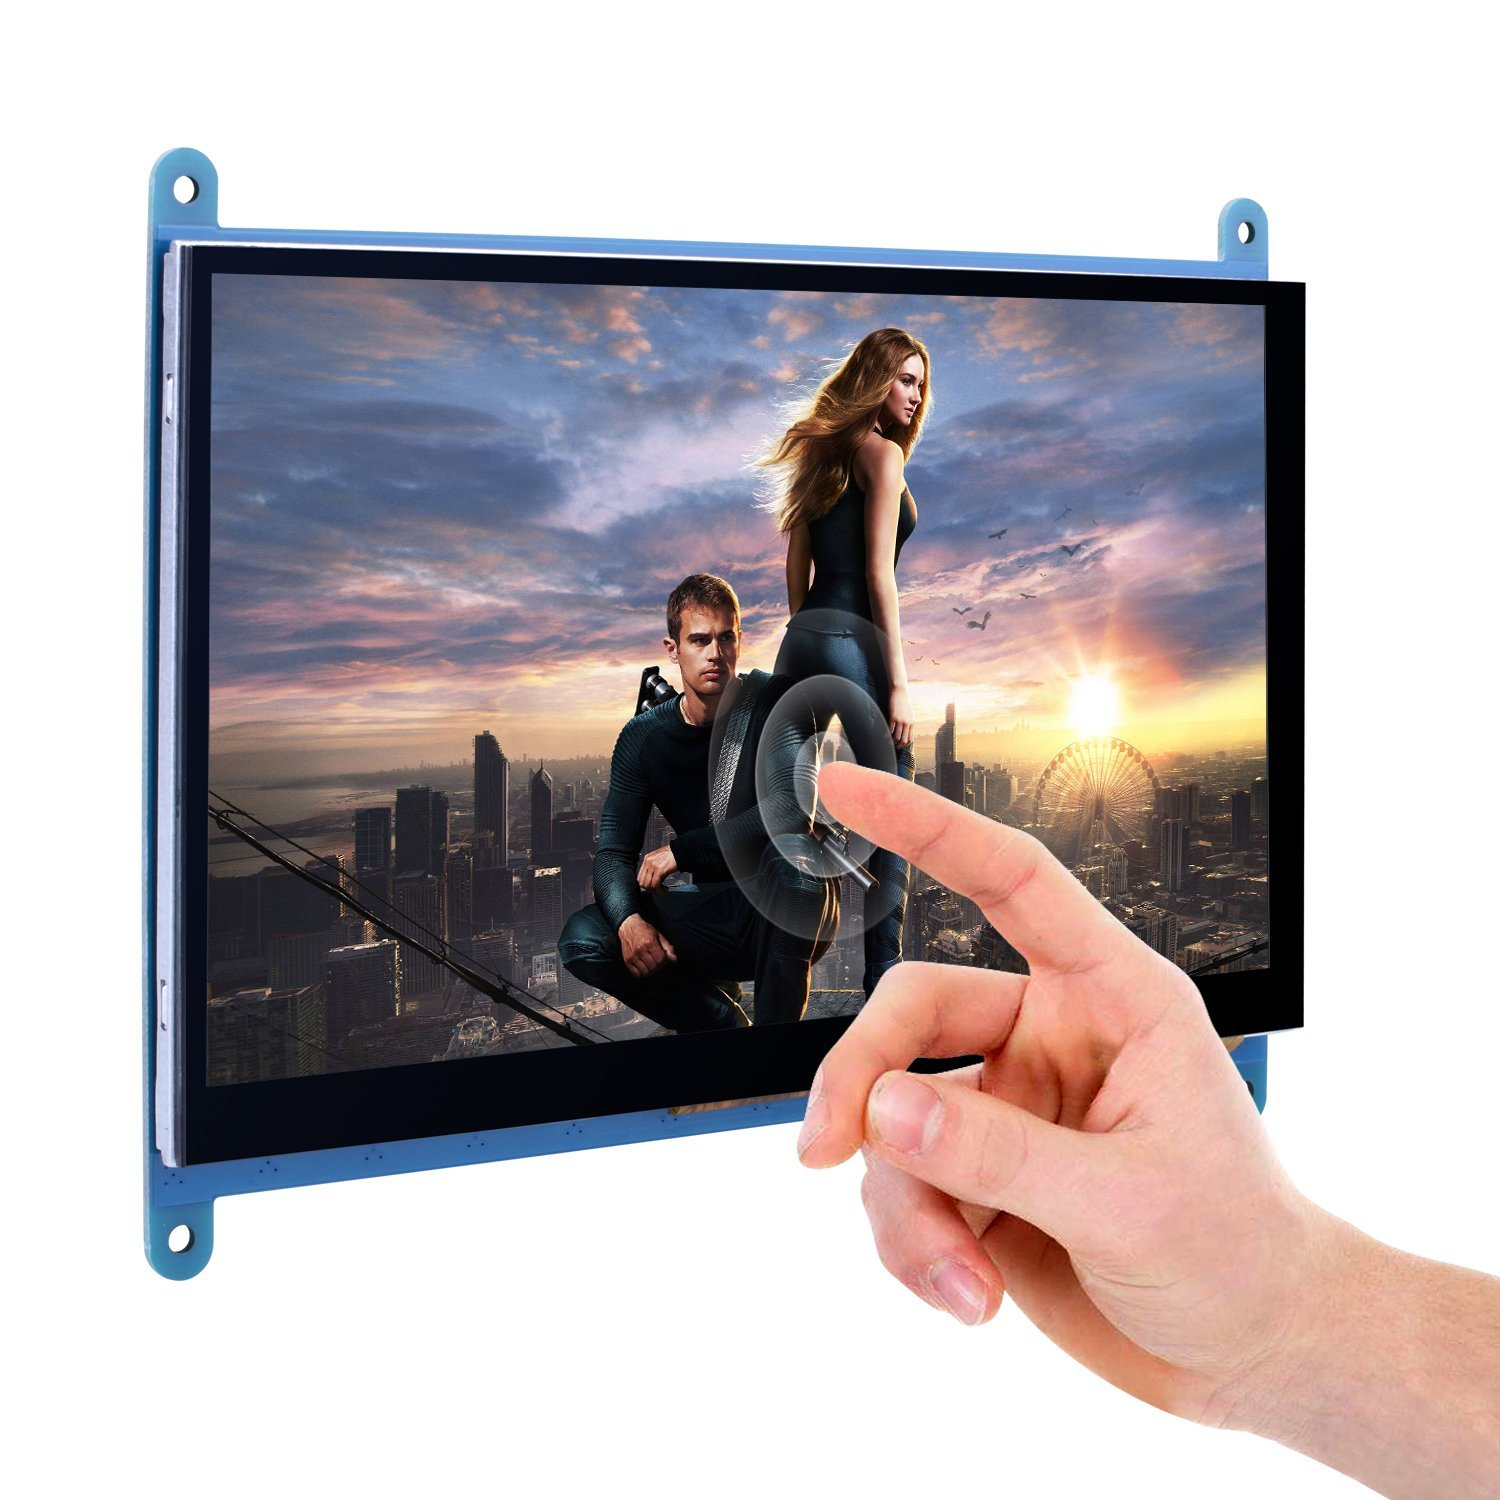 цена BLEL Hot 7 Inch Capacitive Touch Screen TFT LCD Display HDMI Module 800x480 for Raspberry Pi 3 2 Model B and RPi 1 B+ A BB Bla